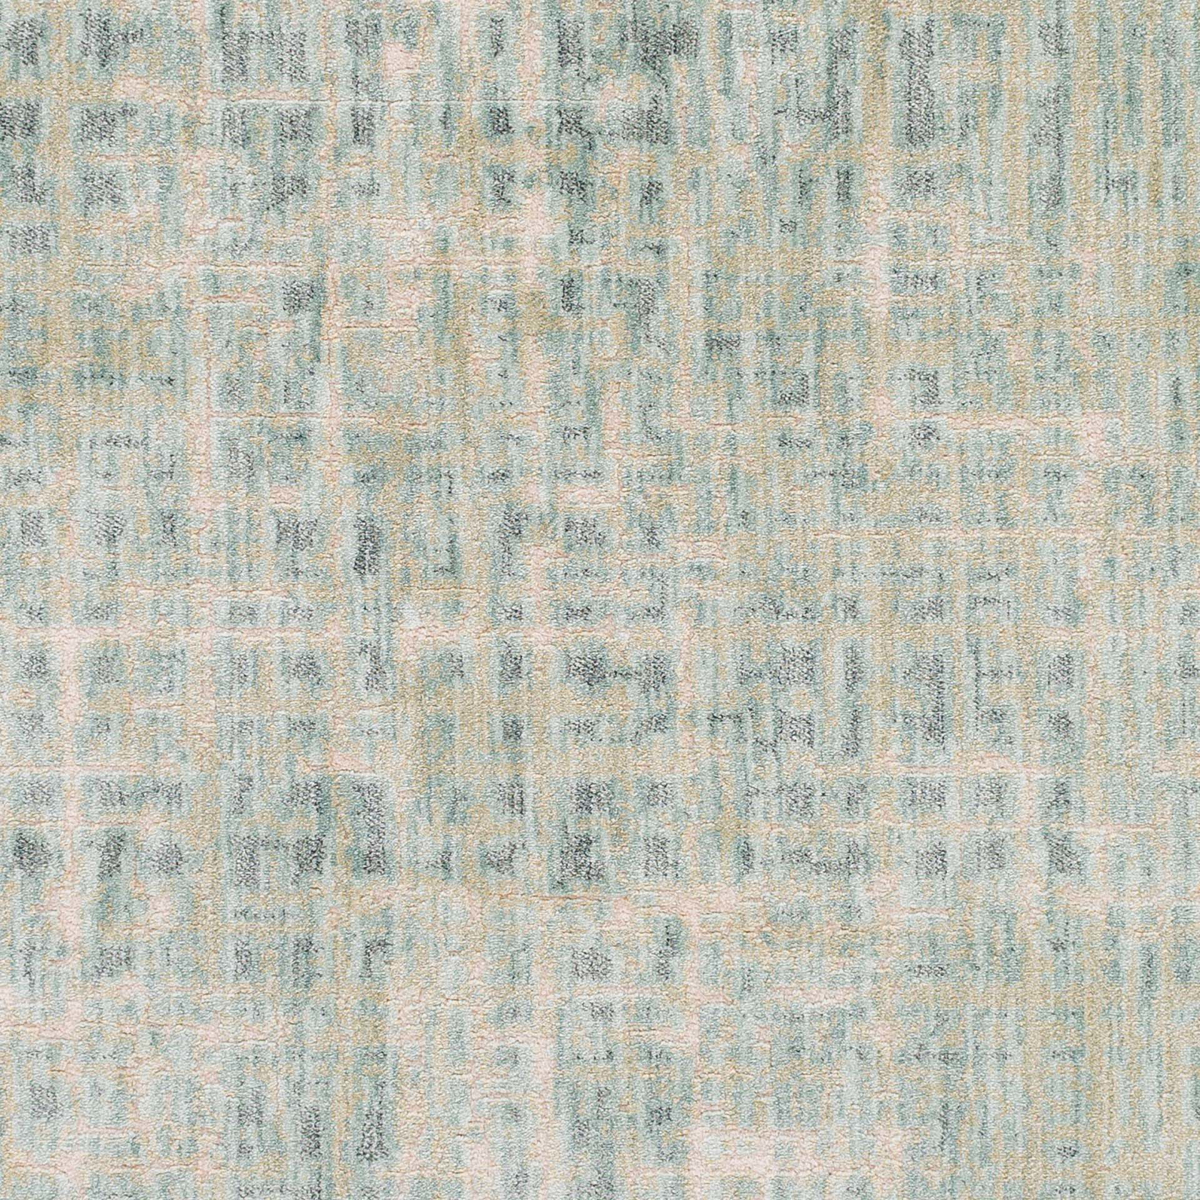 Modern neutral tone machine made Egyptian area rug in green with hints of cream and beige - Close up